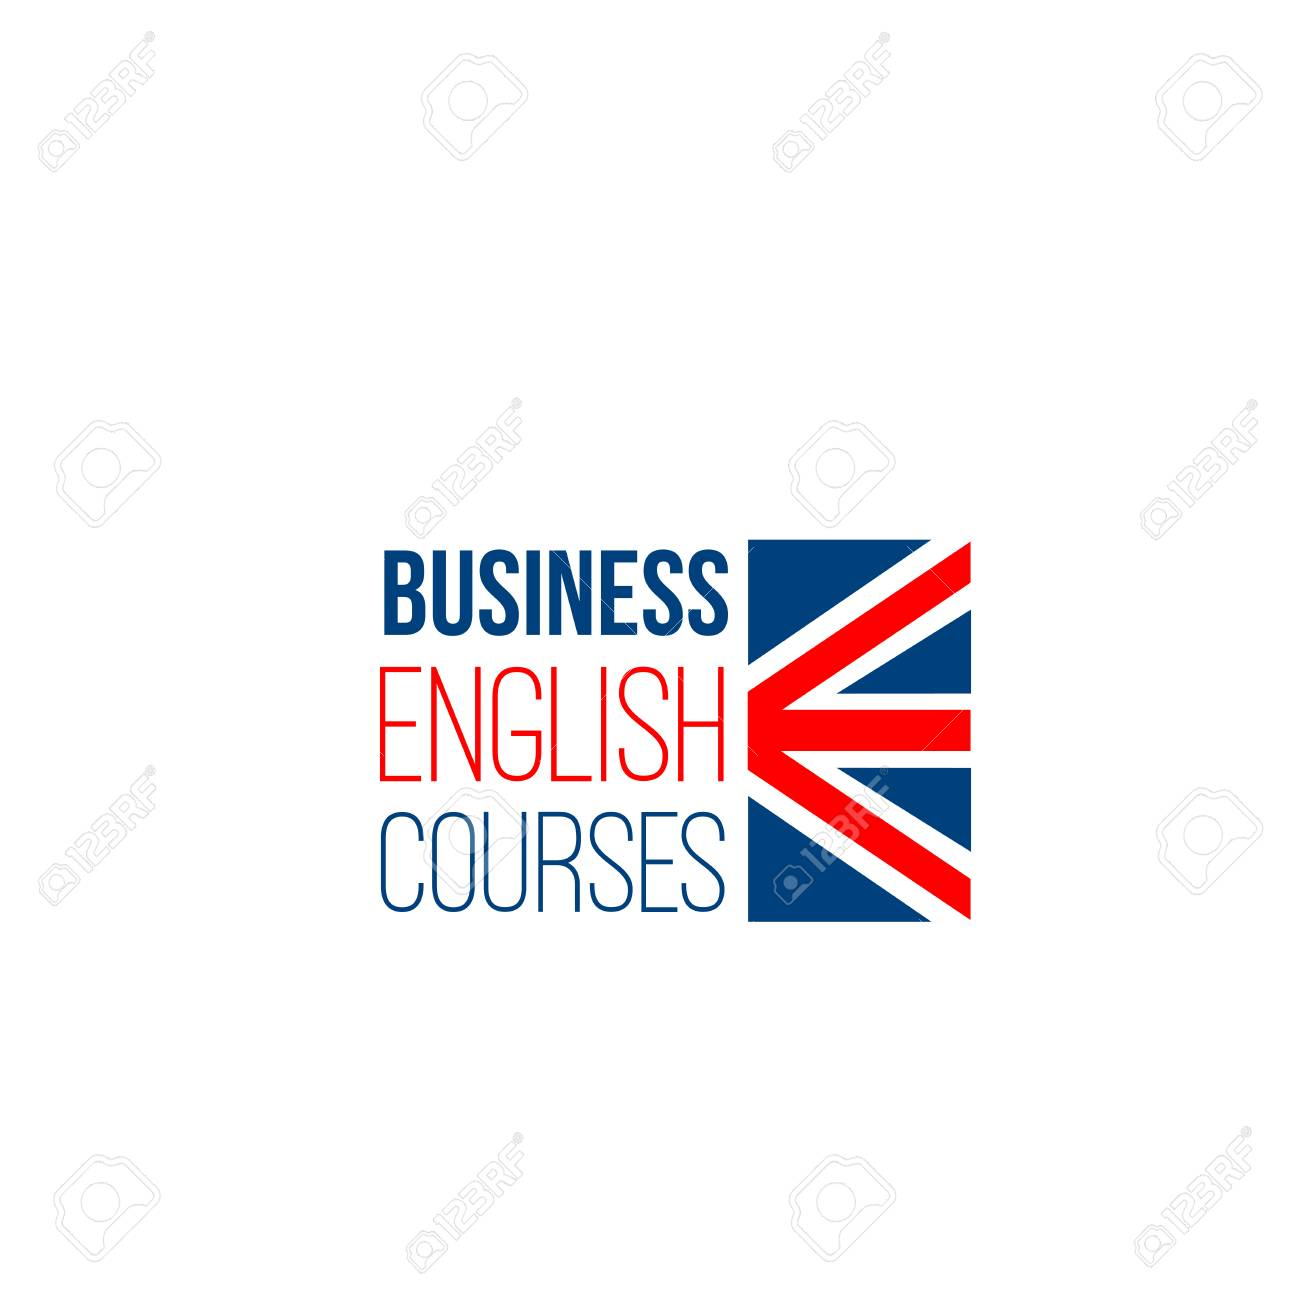 Business English courses vector sign isolated on a white background. Studying foreign languages concept. Creative badge for English language school or courses for adults - 114519971